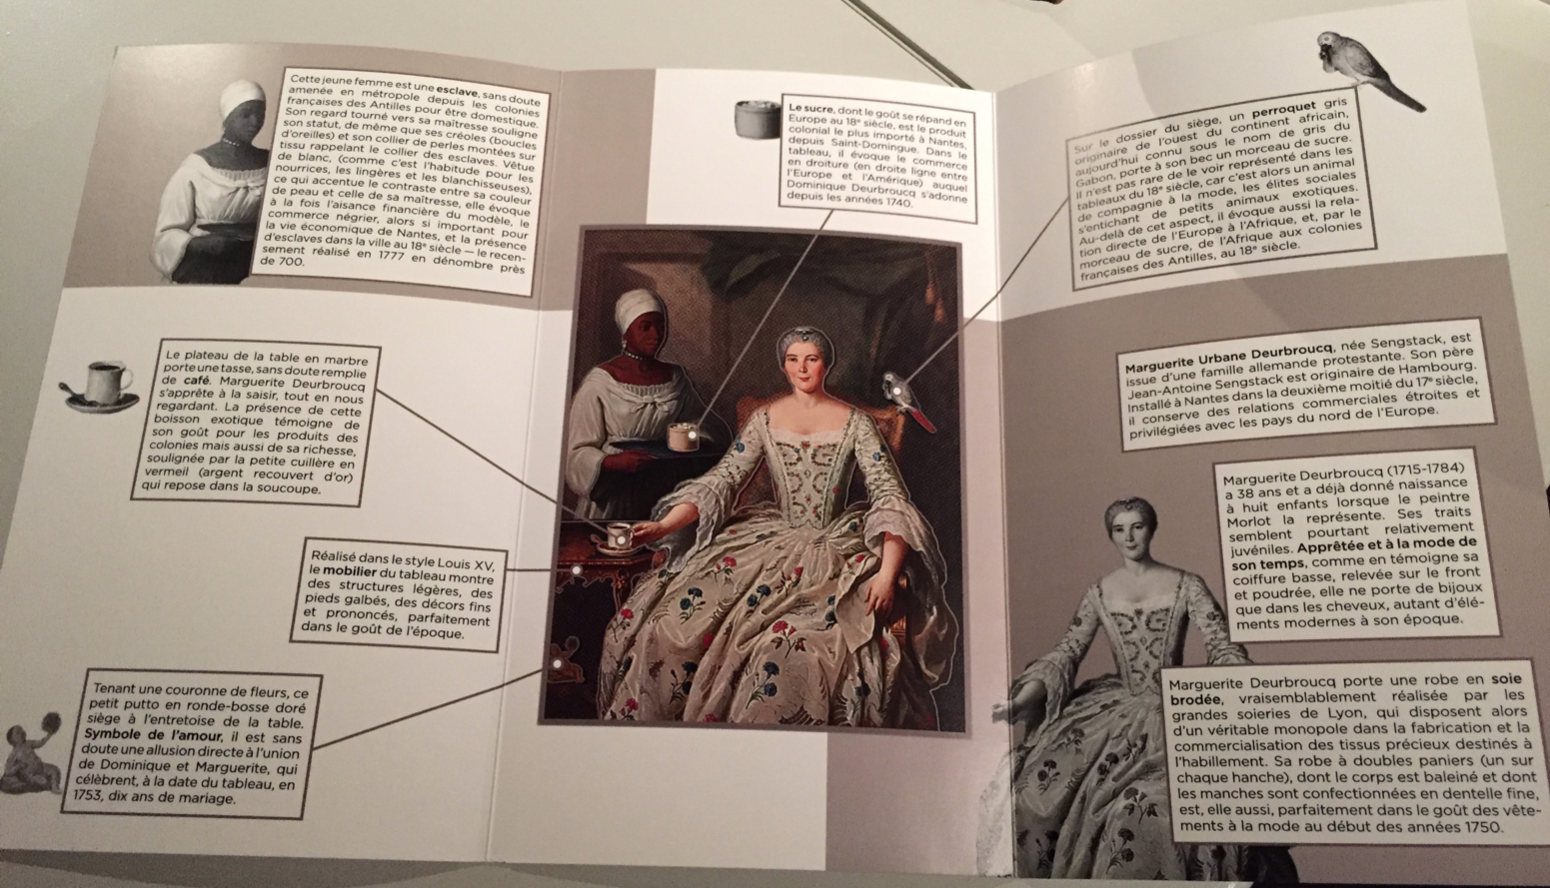 A booklet explaining the details of the portrait of Marguerite Deurbroucq.